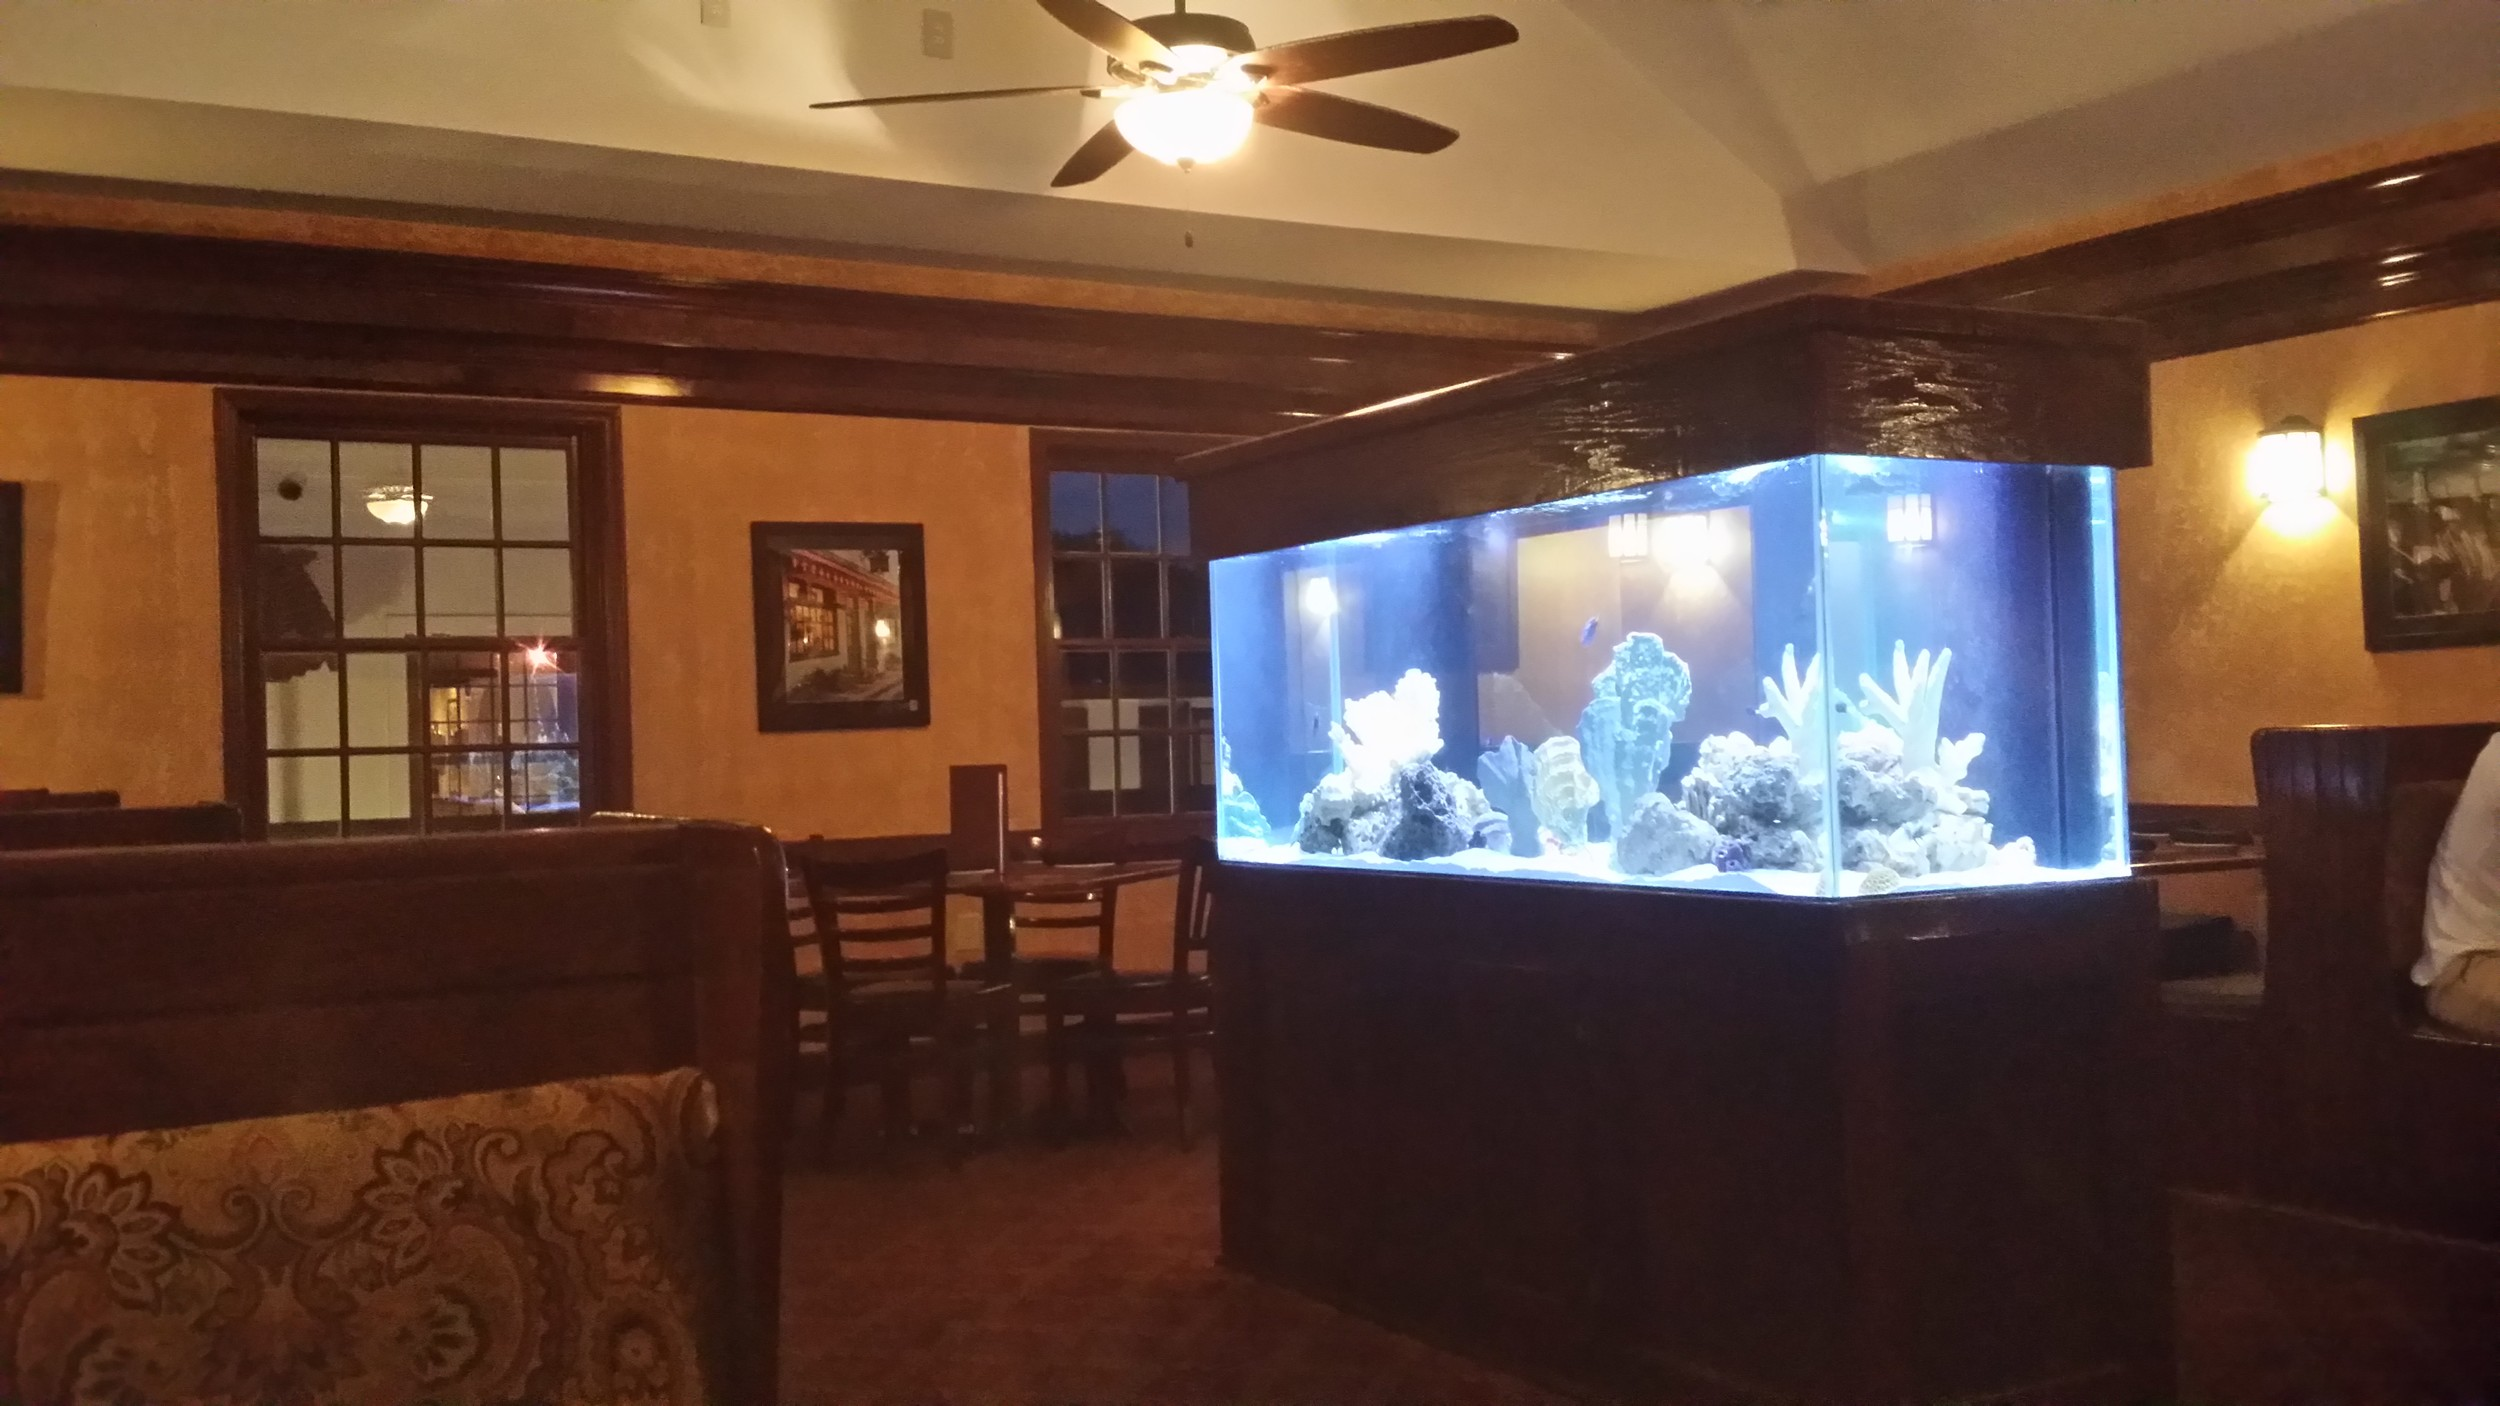 Daily Inspiration At Henley S Steak Seafood The Ponte Vedra Recorder